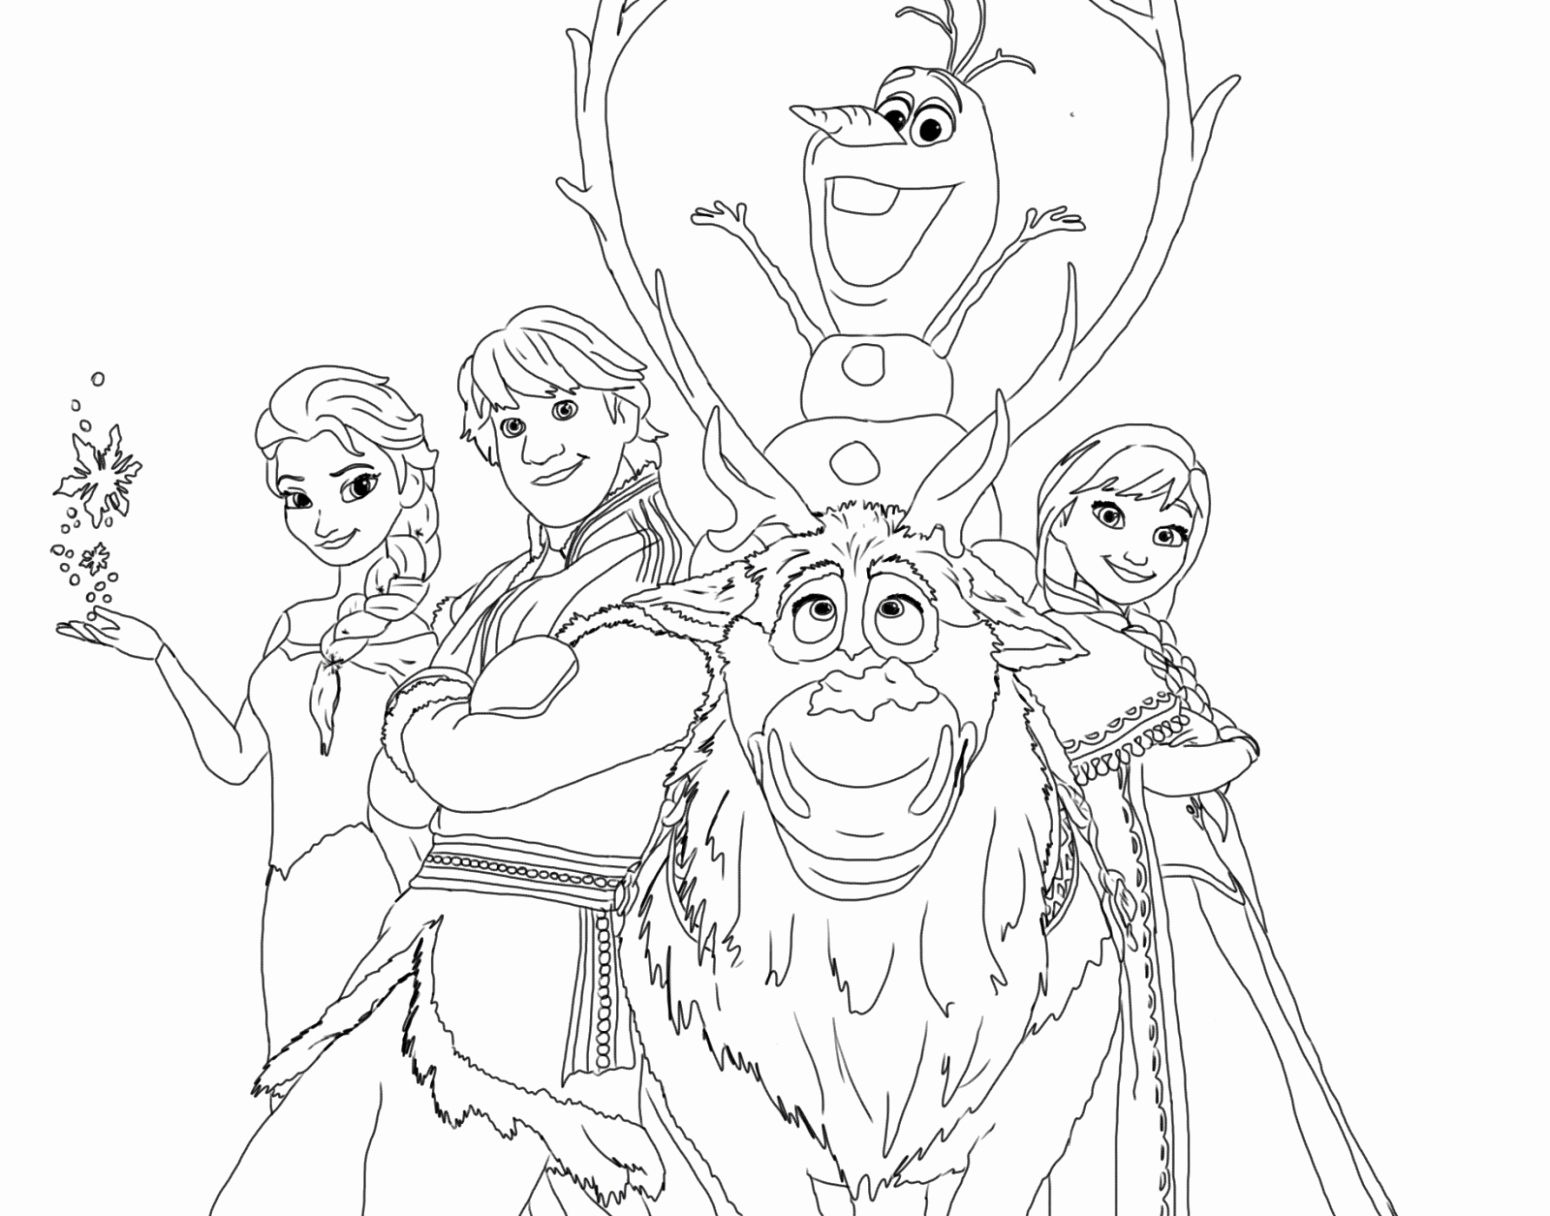 Coloring Of Space New Wonderful Disney Coloring Book Pages Sobizp Frozen Coloring Pages Princess Coloring Pages Elsa Coloring Pages